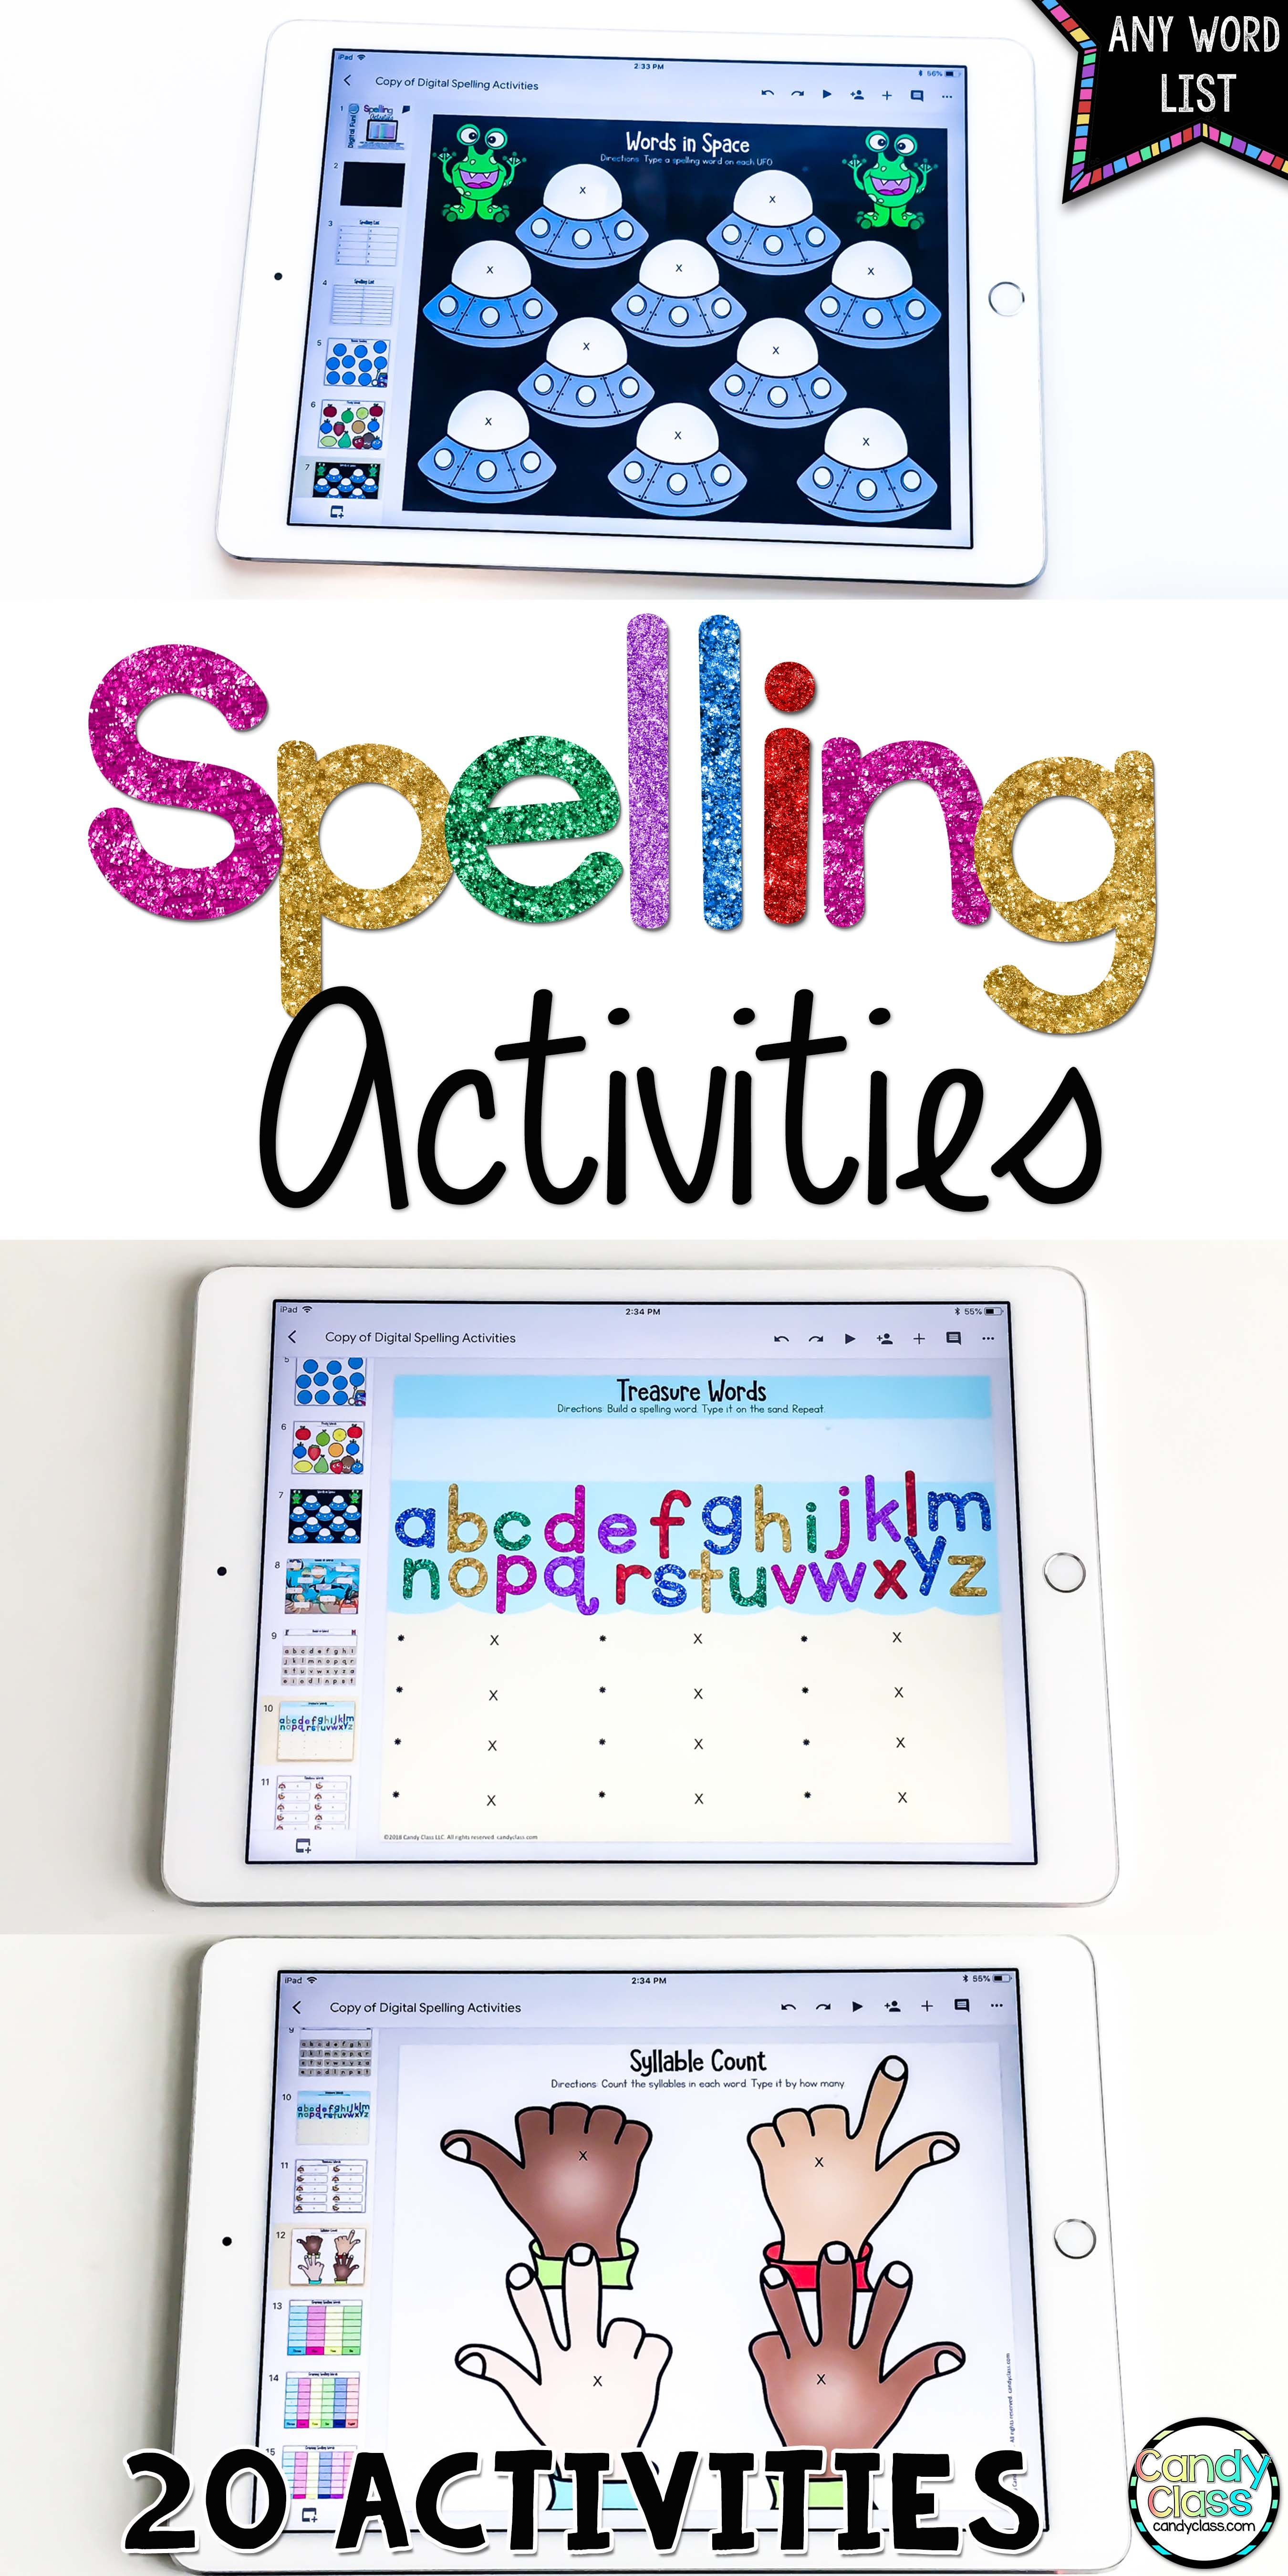 Digital Spelling Activities For Any Lists Of Words Google Classroom Word Work Spelling Activities Teaching Spelling Spelling Word Activities